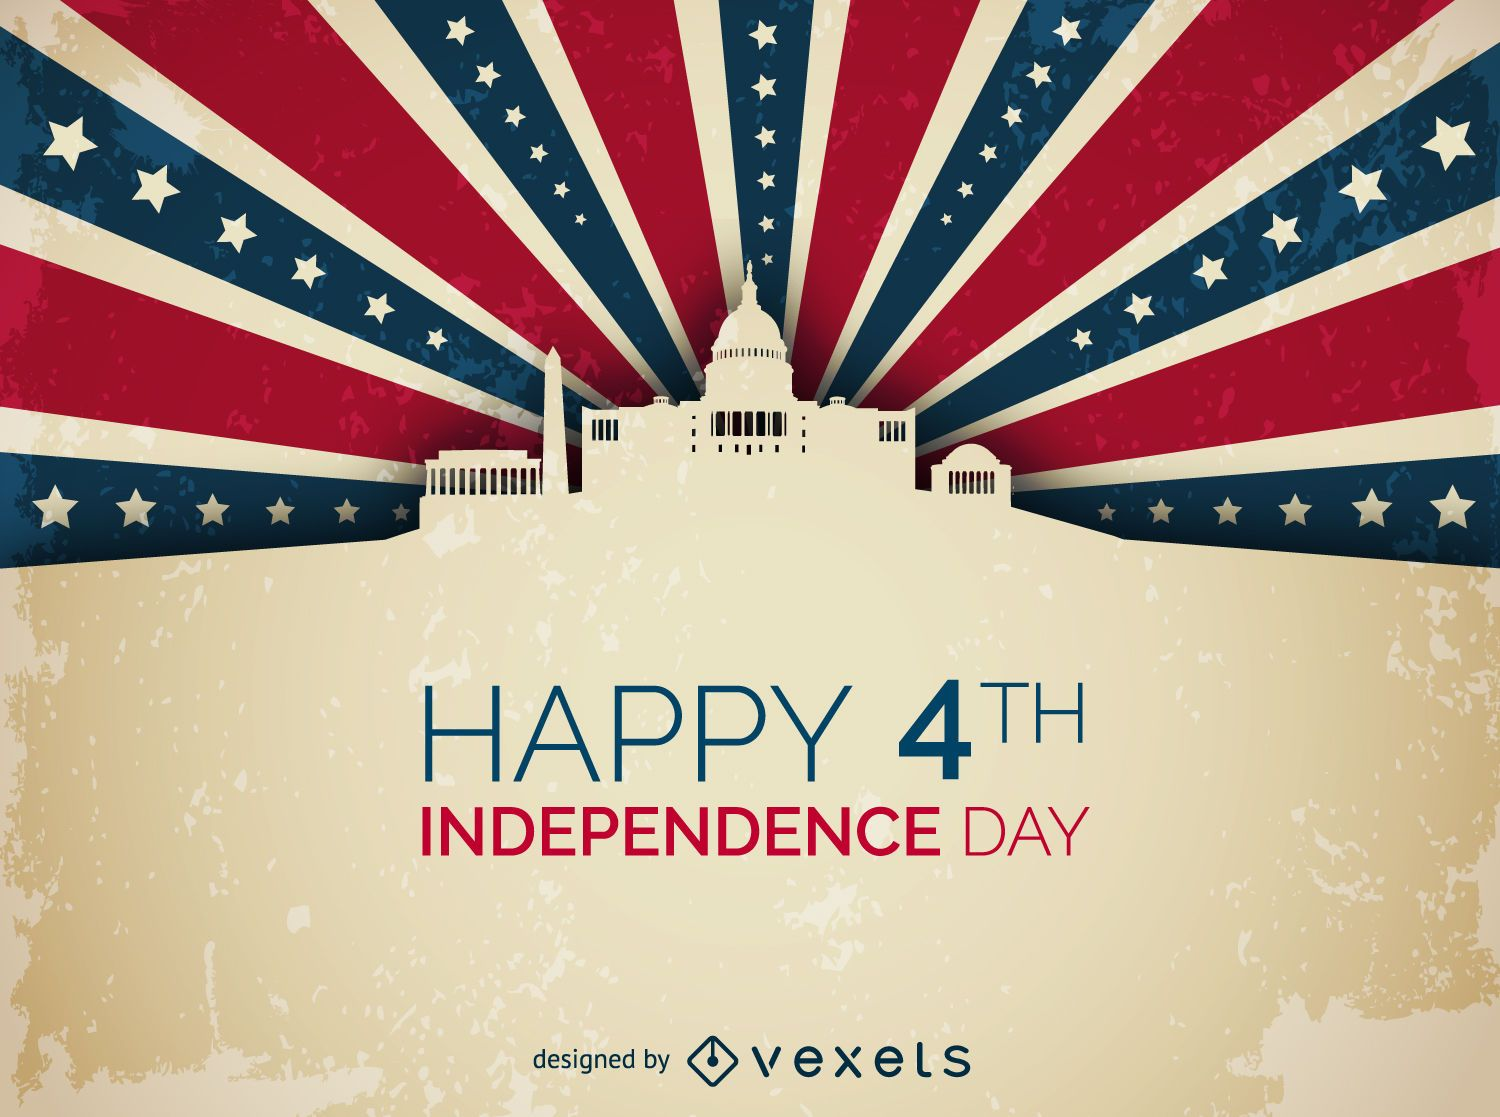 Independence Day White House design